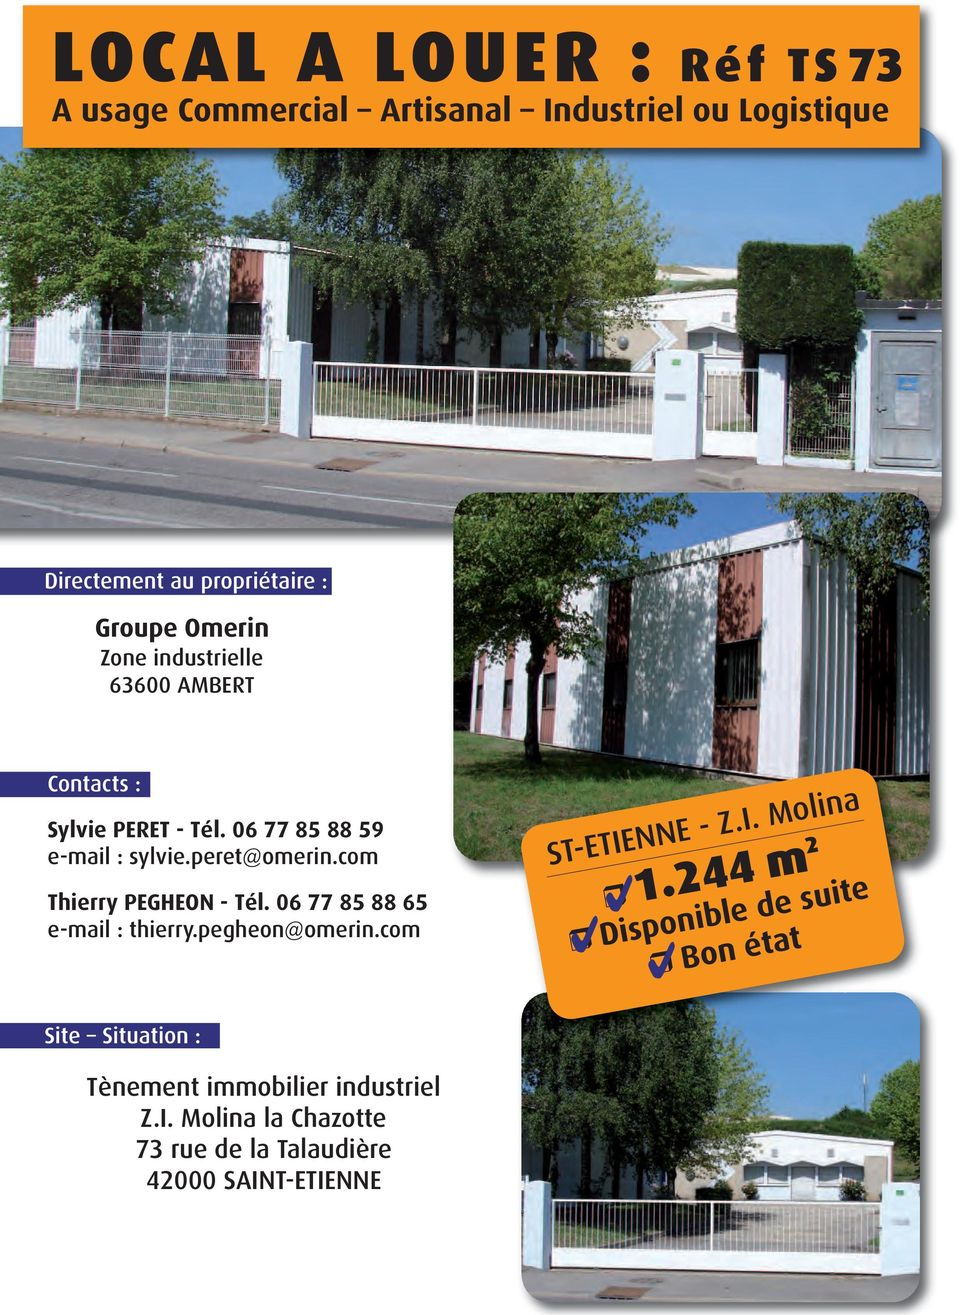 com Thierry PEGHEON - Tél. 06 77 85 88 65 e-mail : thierry.pegheon@omerin.com ST-ETIENNE - Z.I. Molina 1.